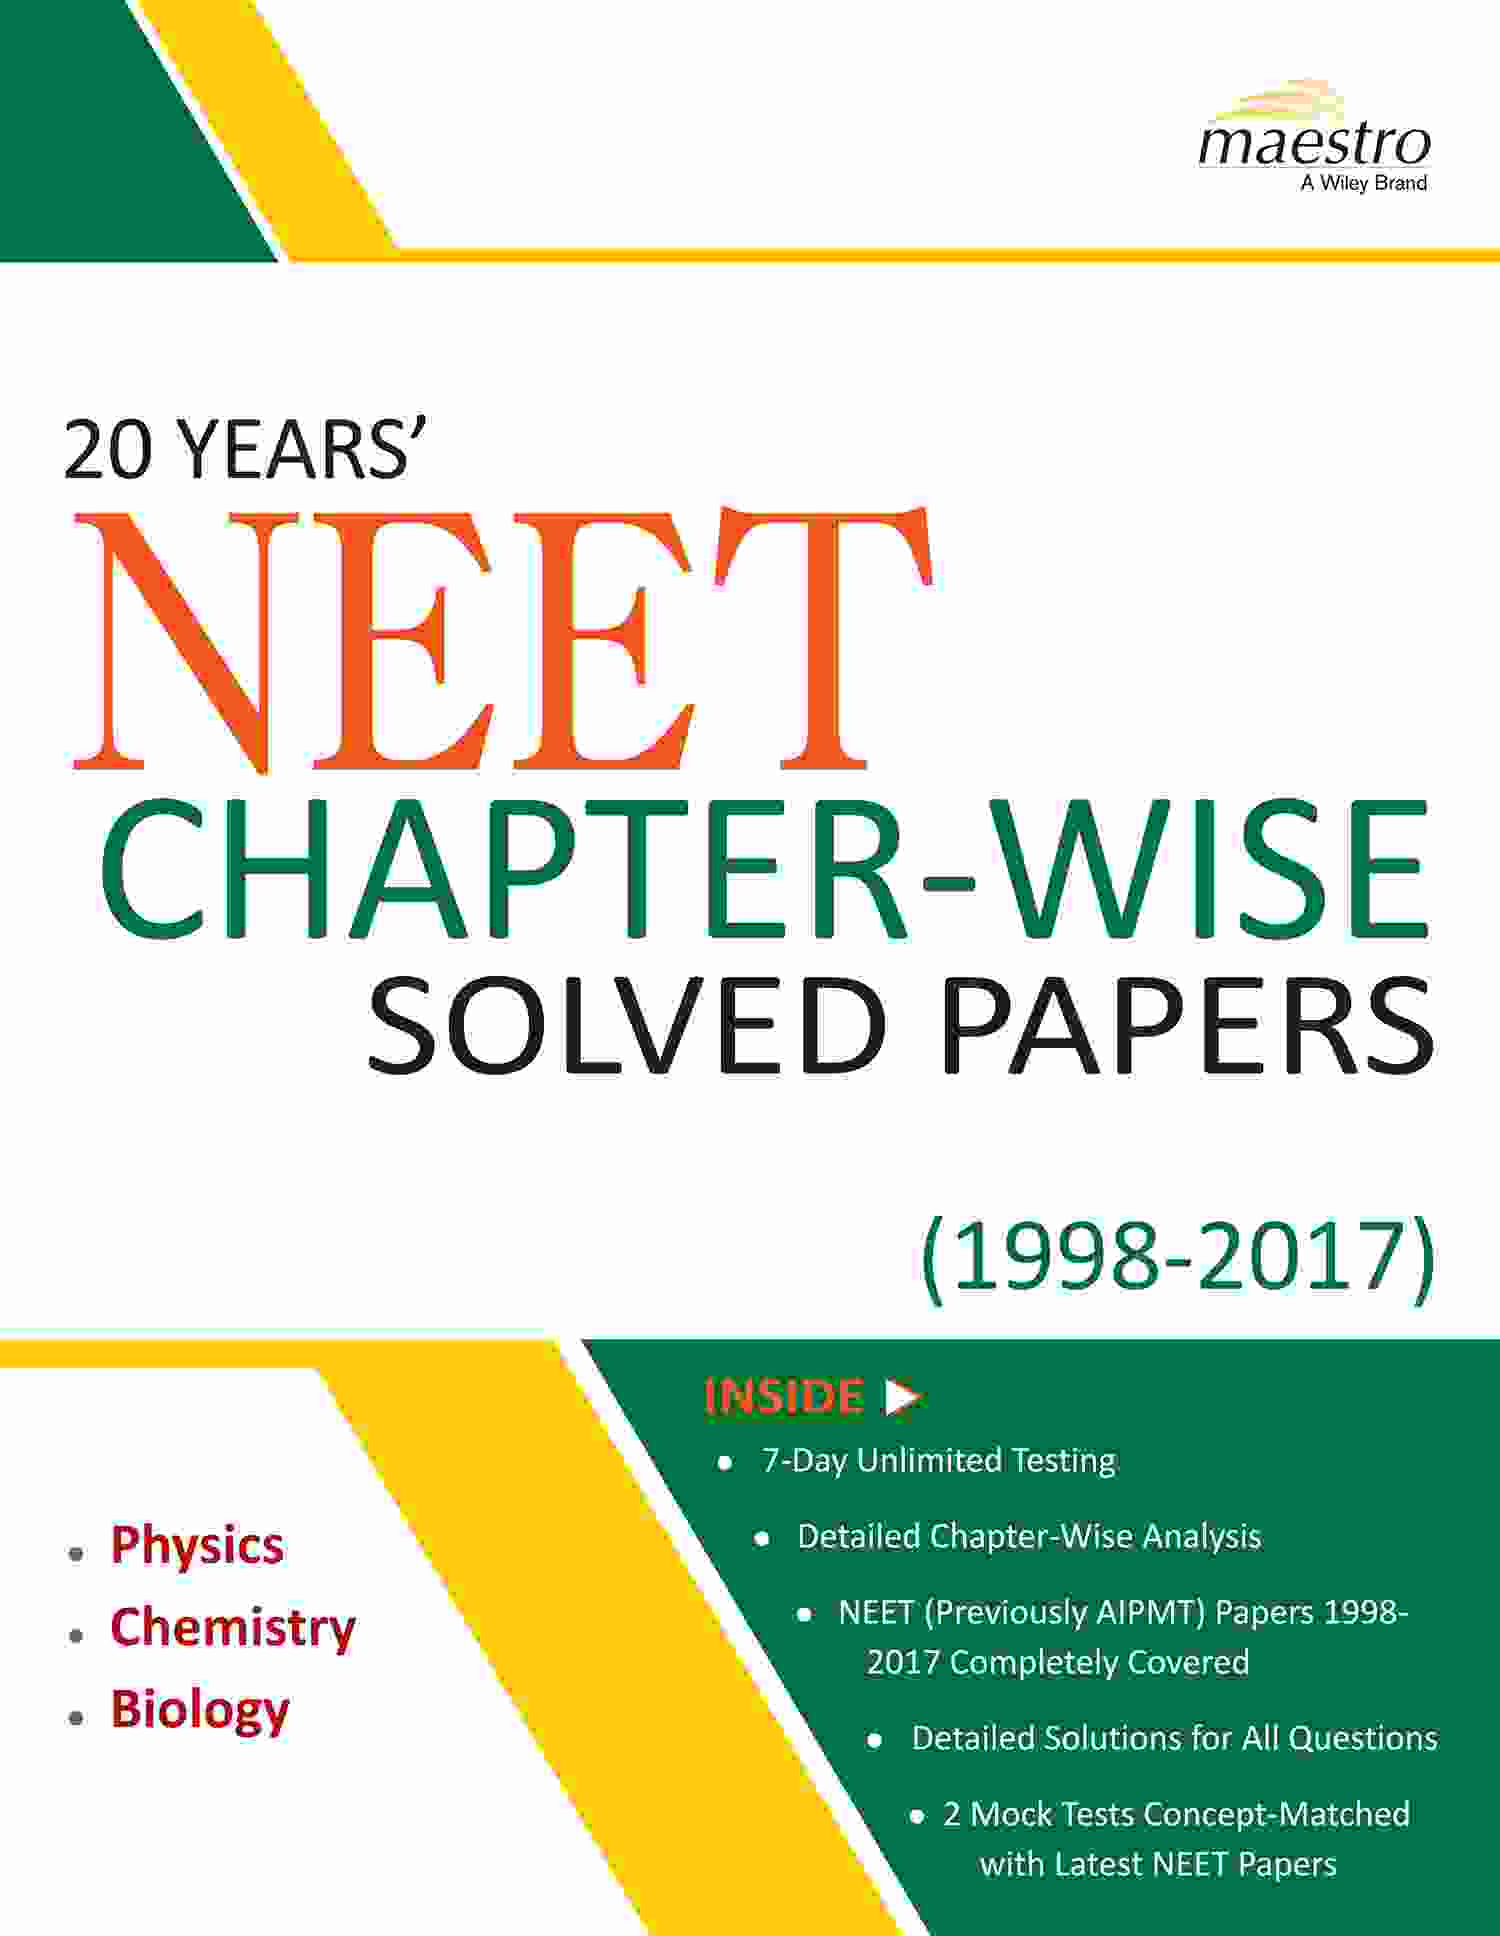 Wiley's 20 Years' NEET Chapter-Wise Solved Papers (1998-2017)